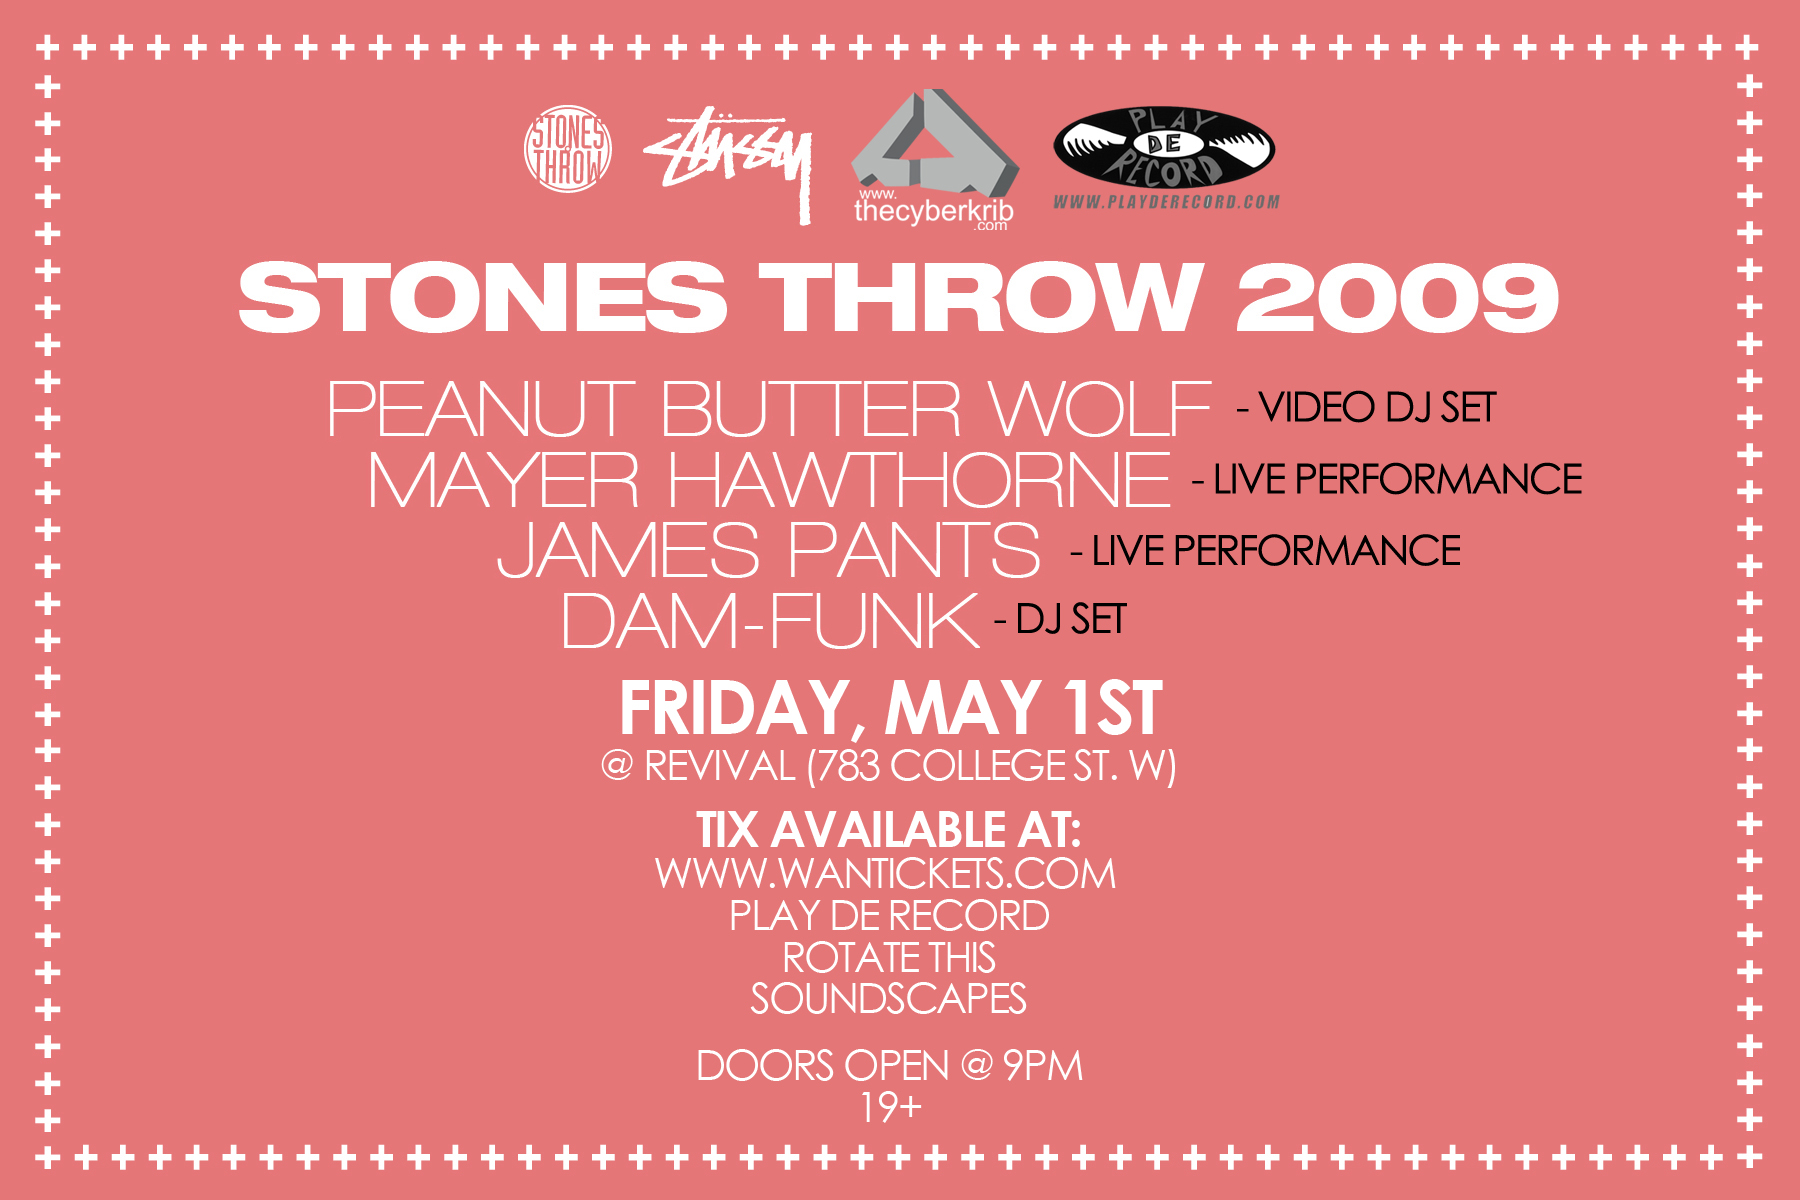 stones-throw-flyer-back-print-copy